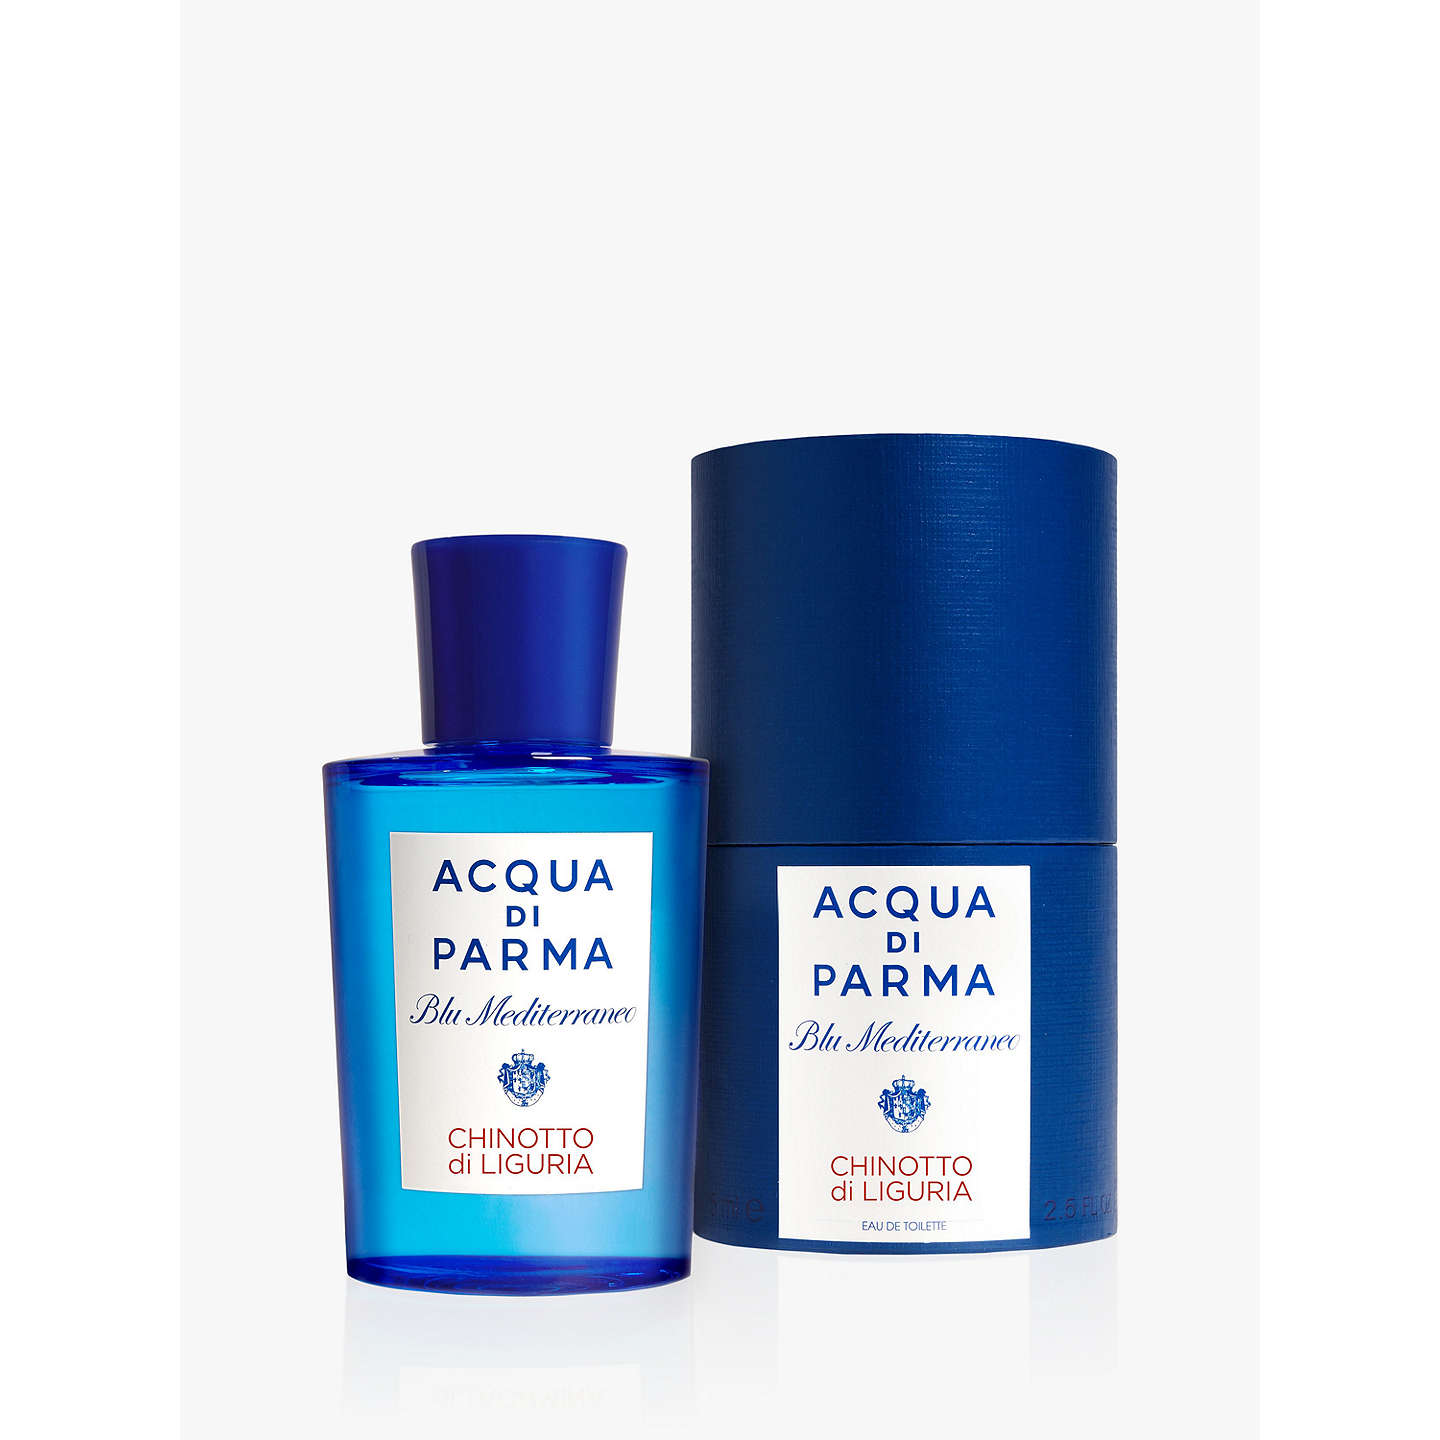 BuyAcqua di Parma Blu Mediterraneo Chinotto Liguria Eau de Toilette Spray, 75ML Online at johnlewis.com